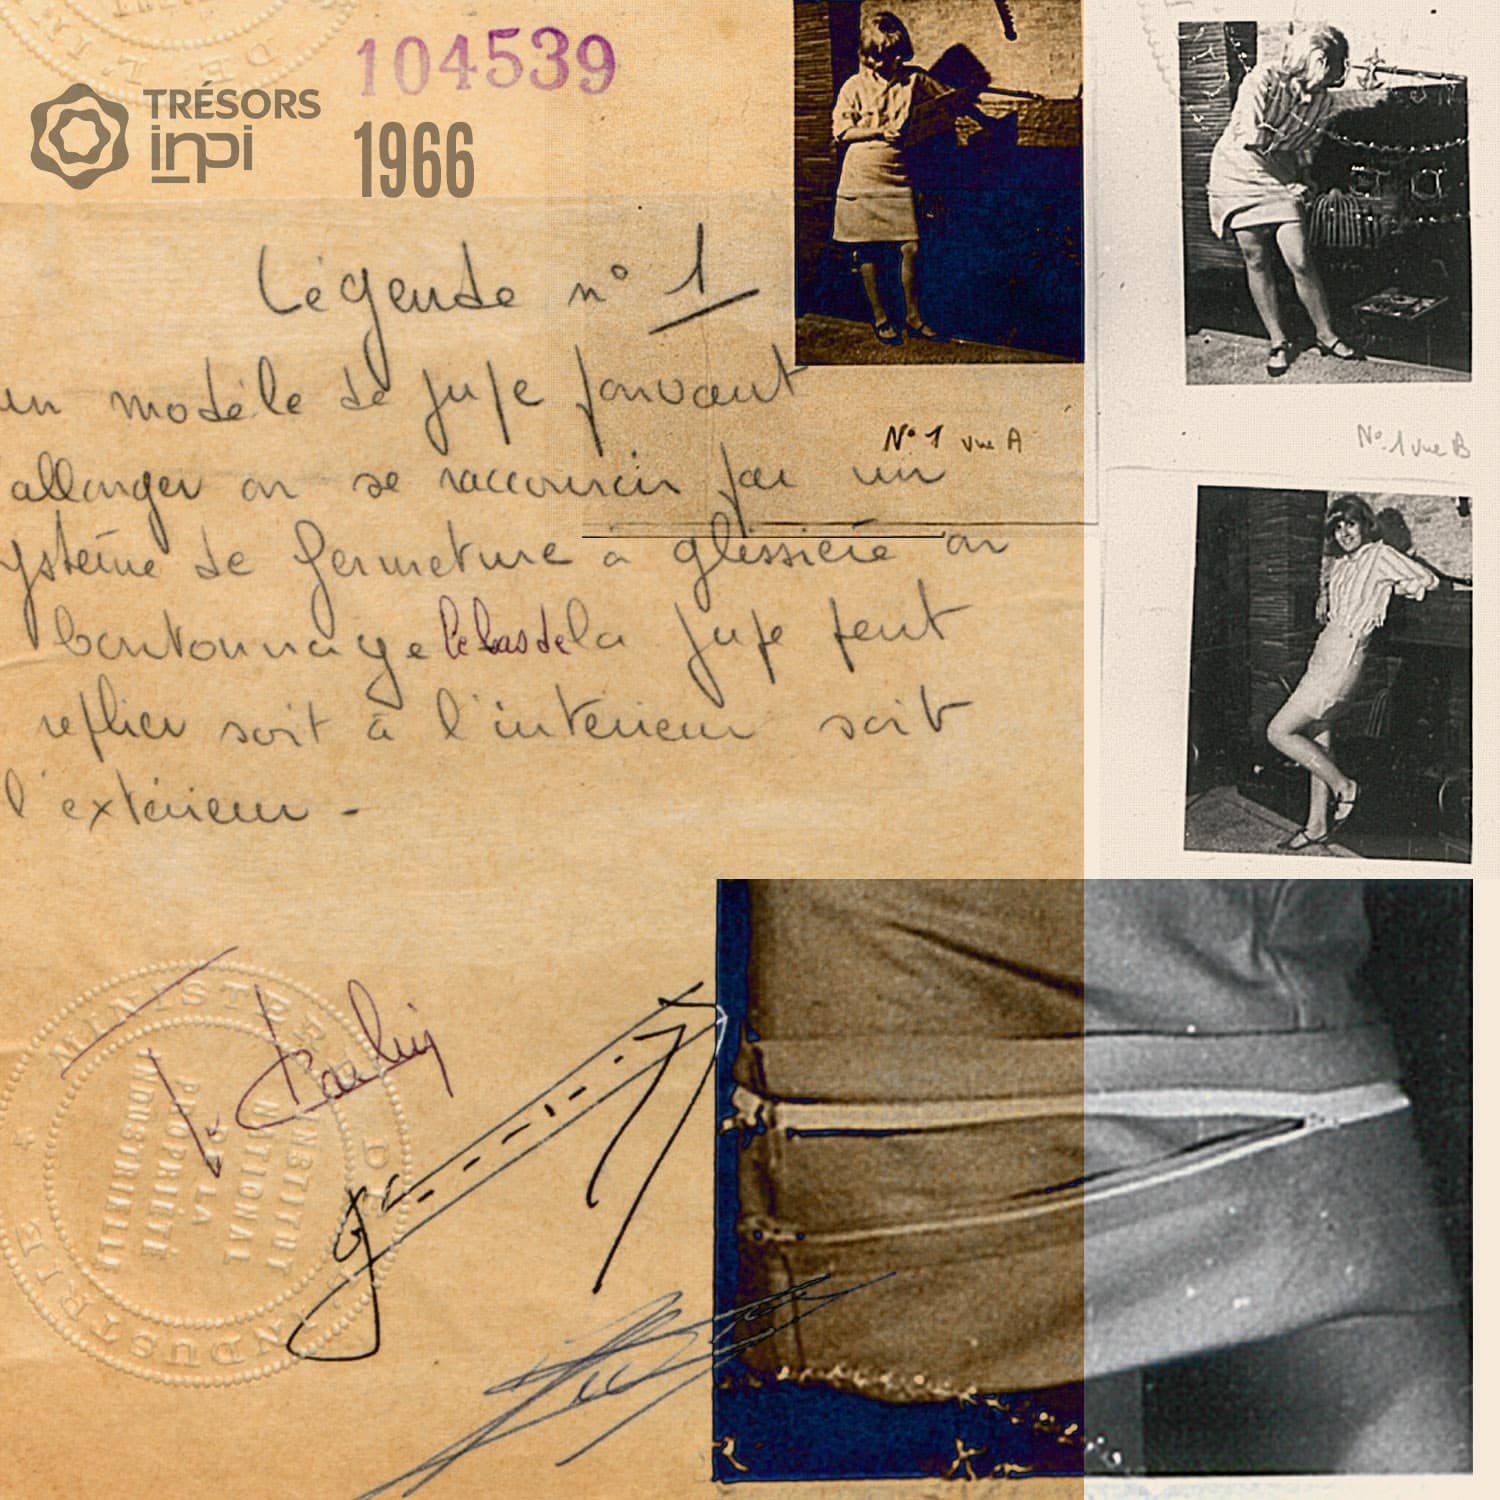 Jacques Cerveau, Jacques Godingen, Joelle Charlin 1966 transformable mini-skirt invention - INPI archives